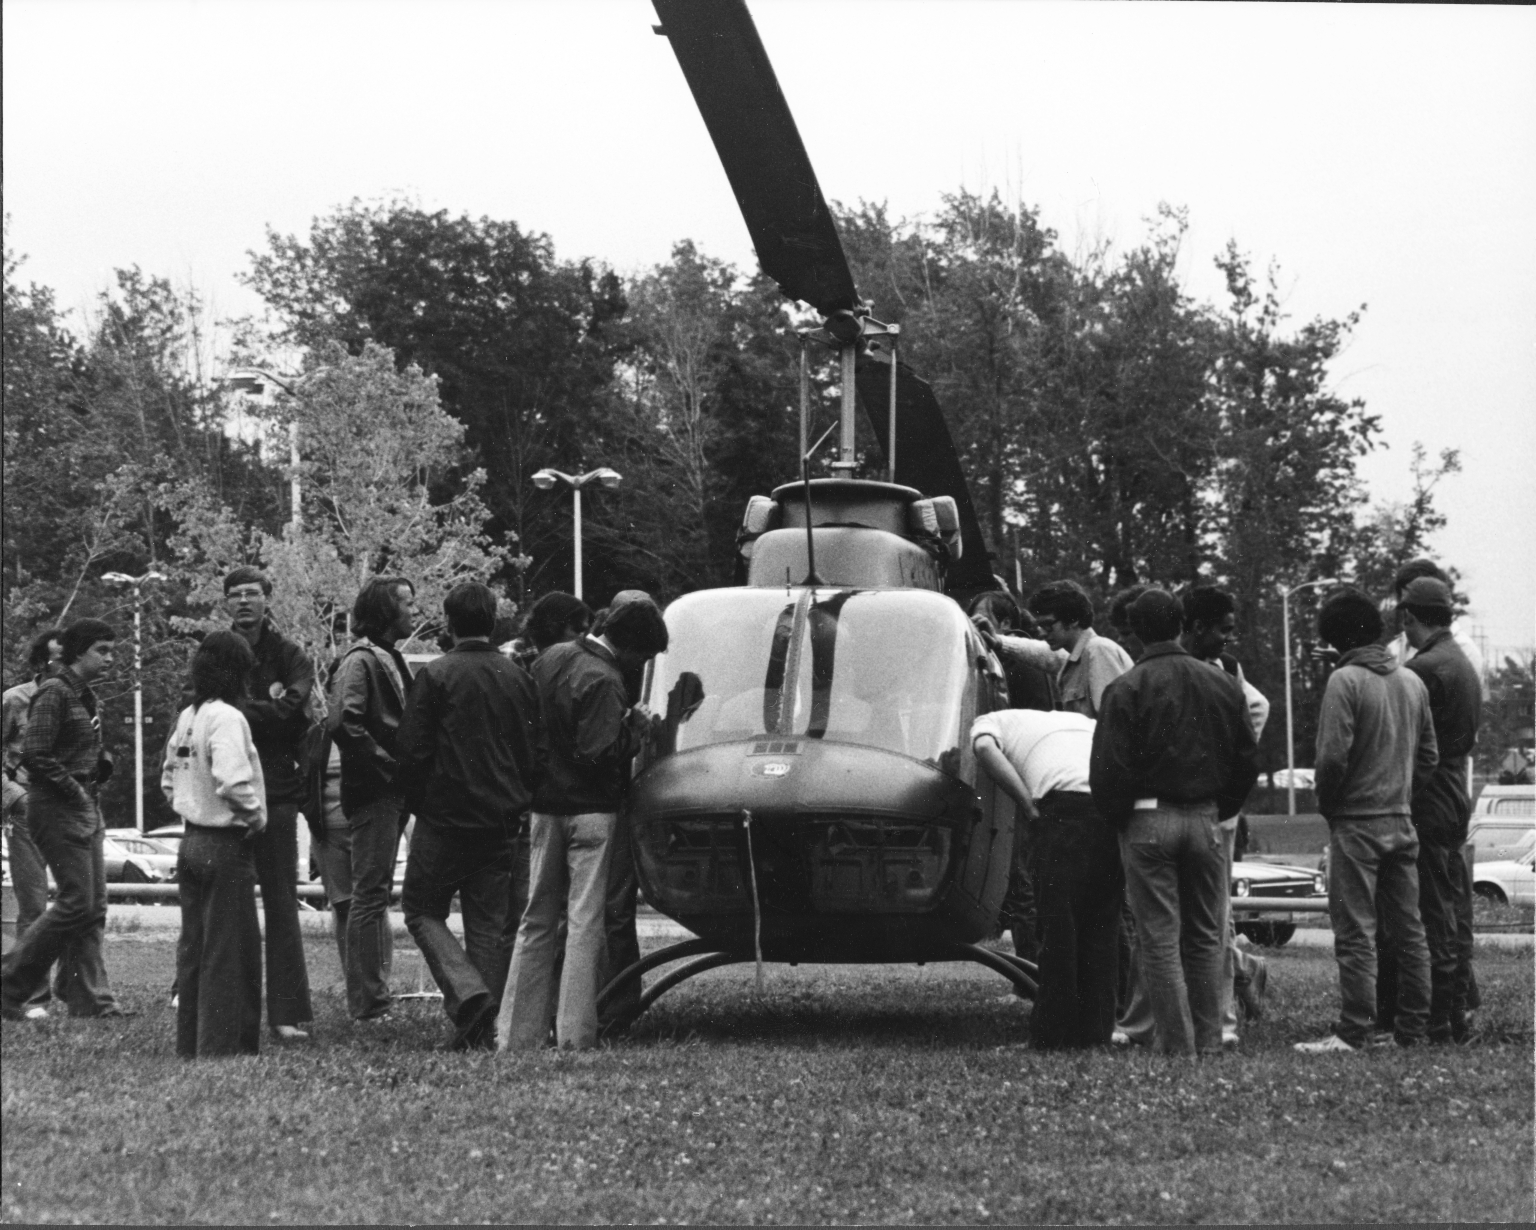 Student Orientation, Helicopter